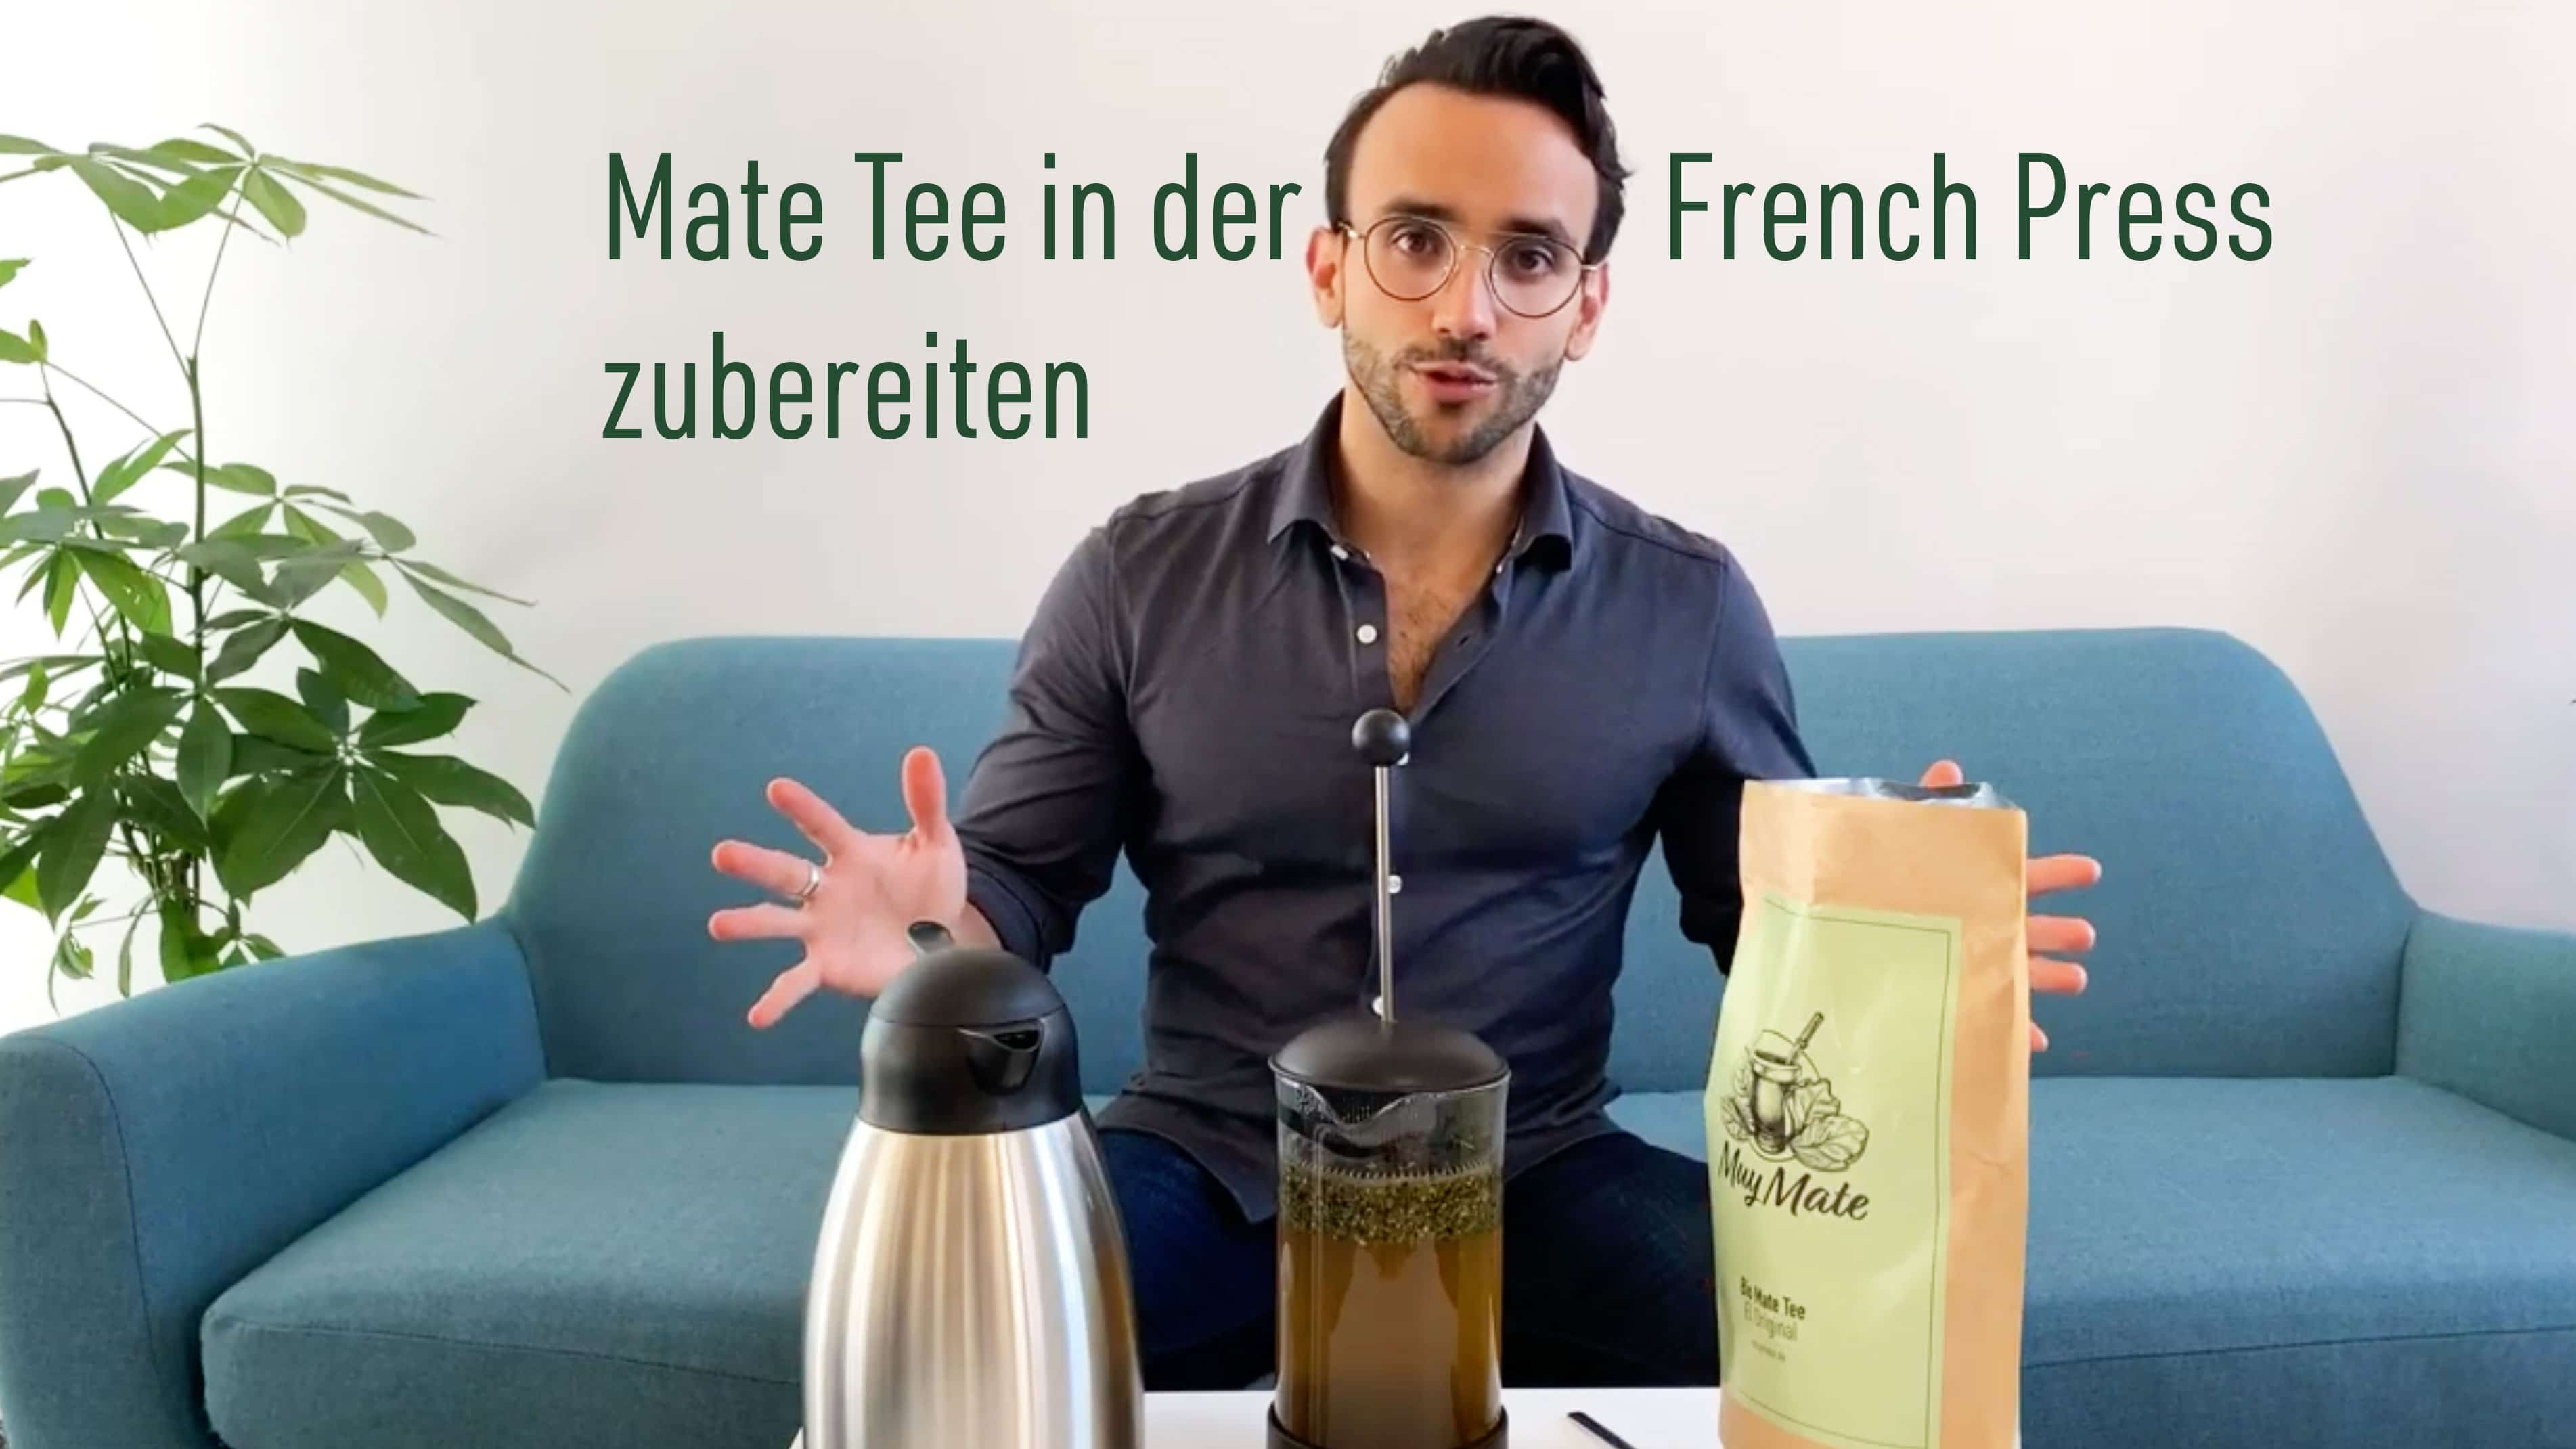 Mate Tee in der French Press